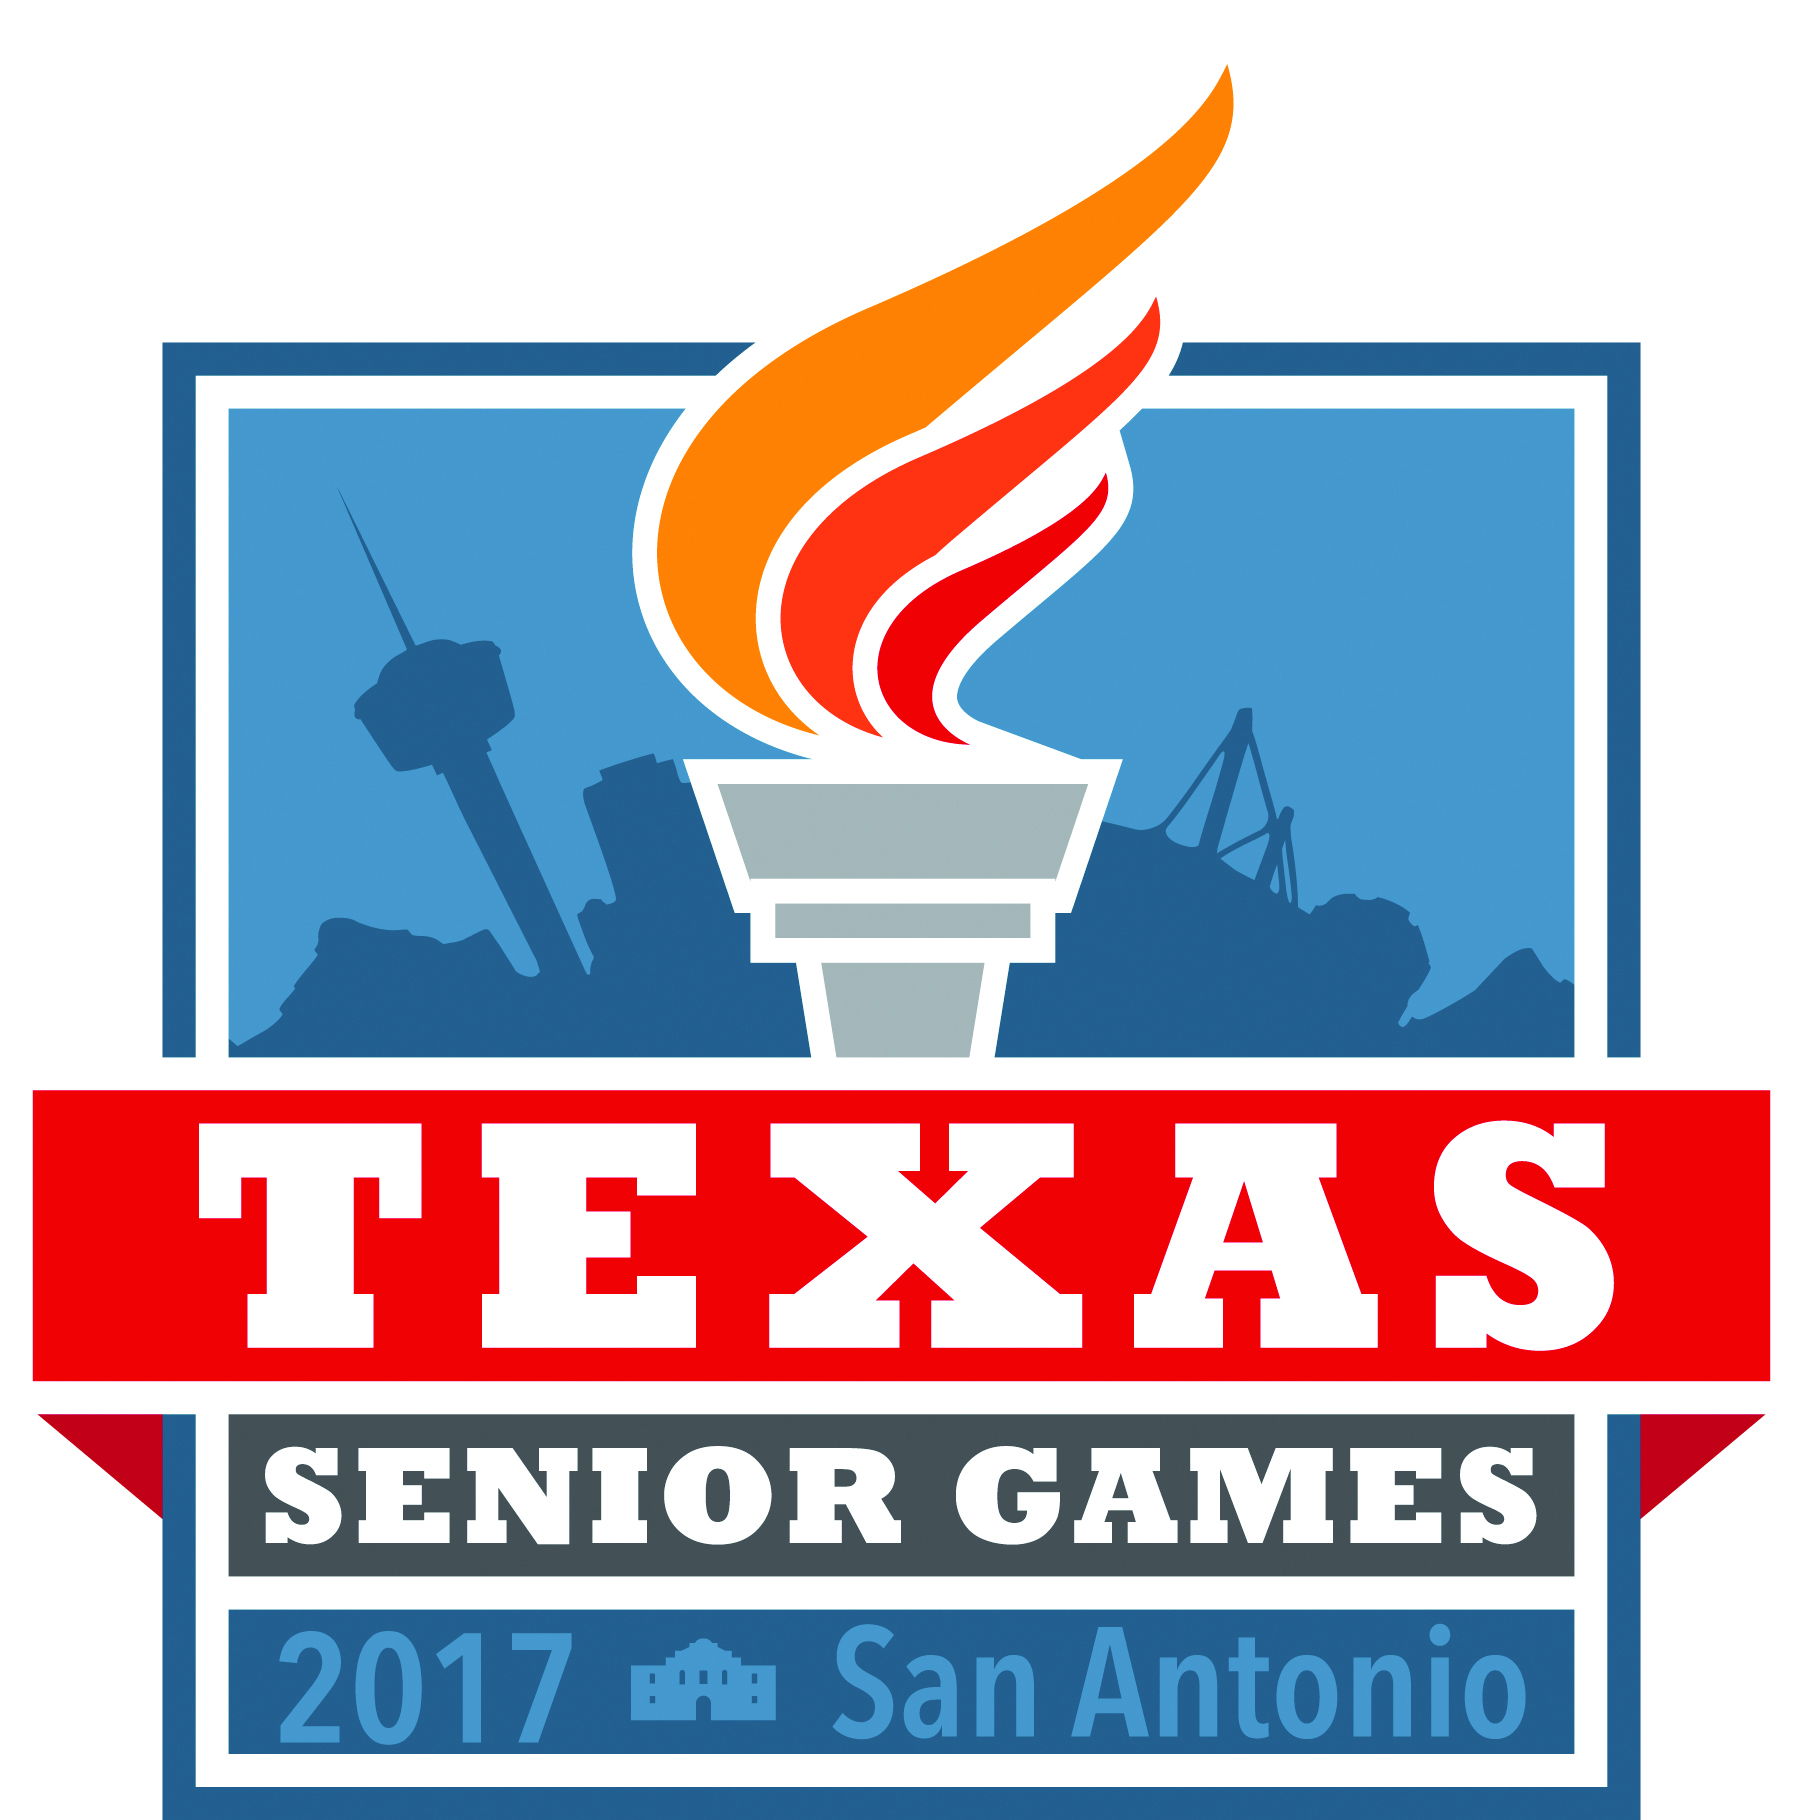 Texas Senior Games - Cycling